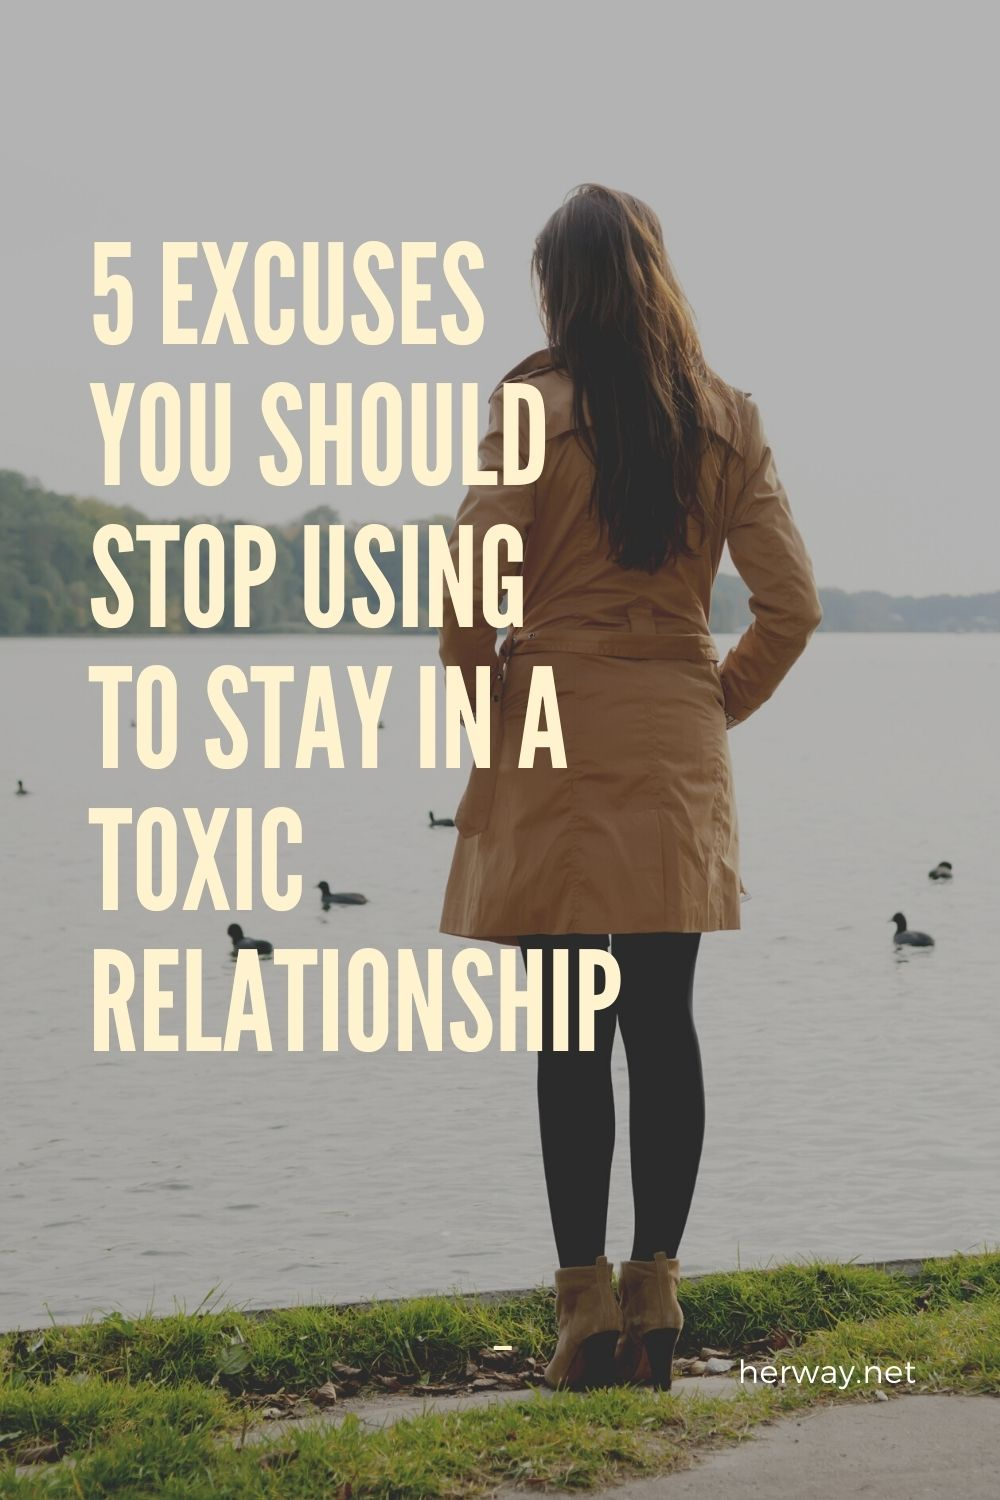 5 Excuses You Should Stop Using To Stay In A Toxic Relationship